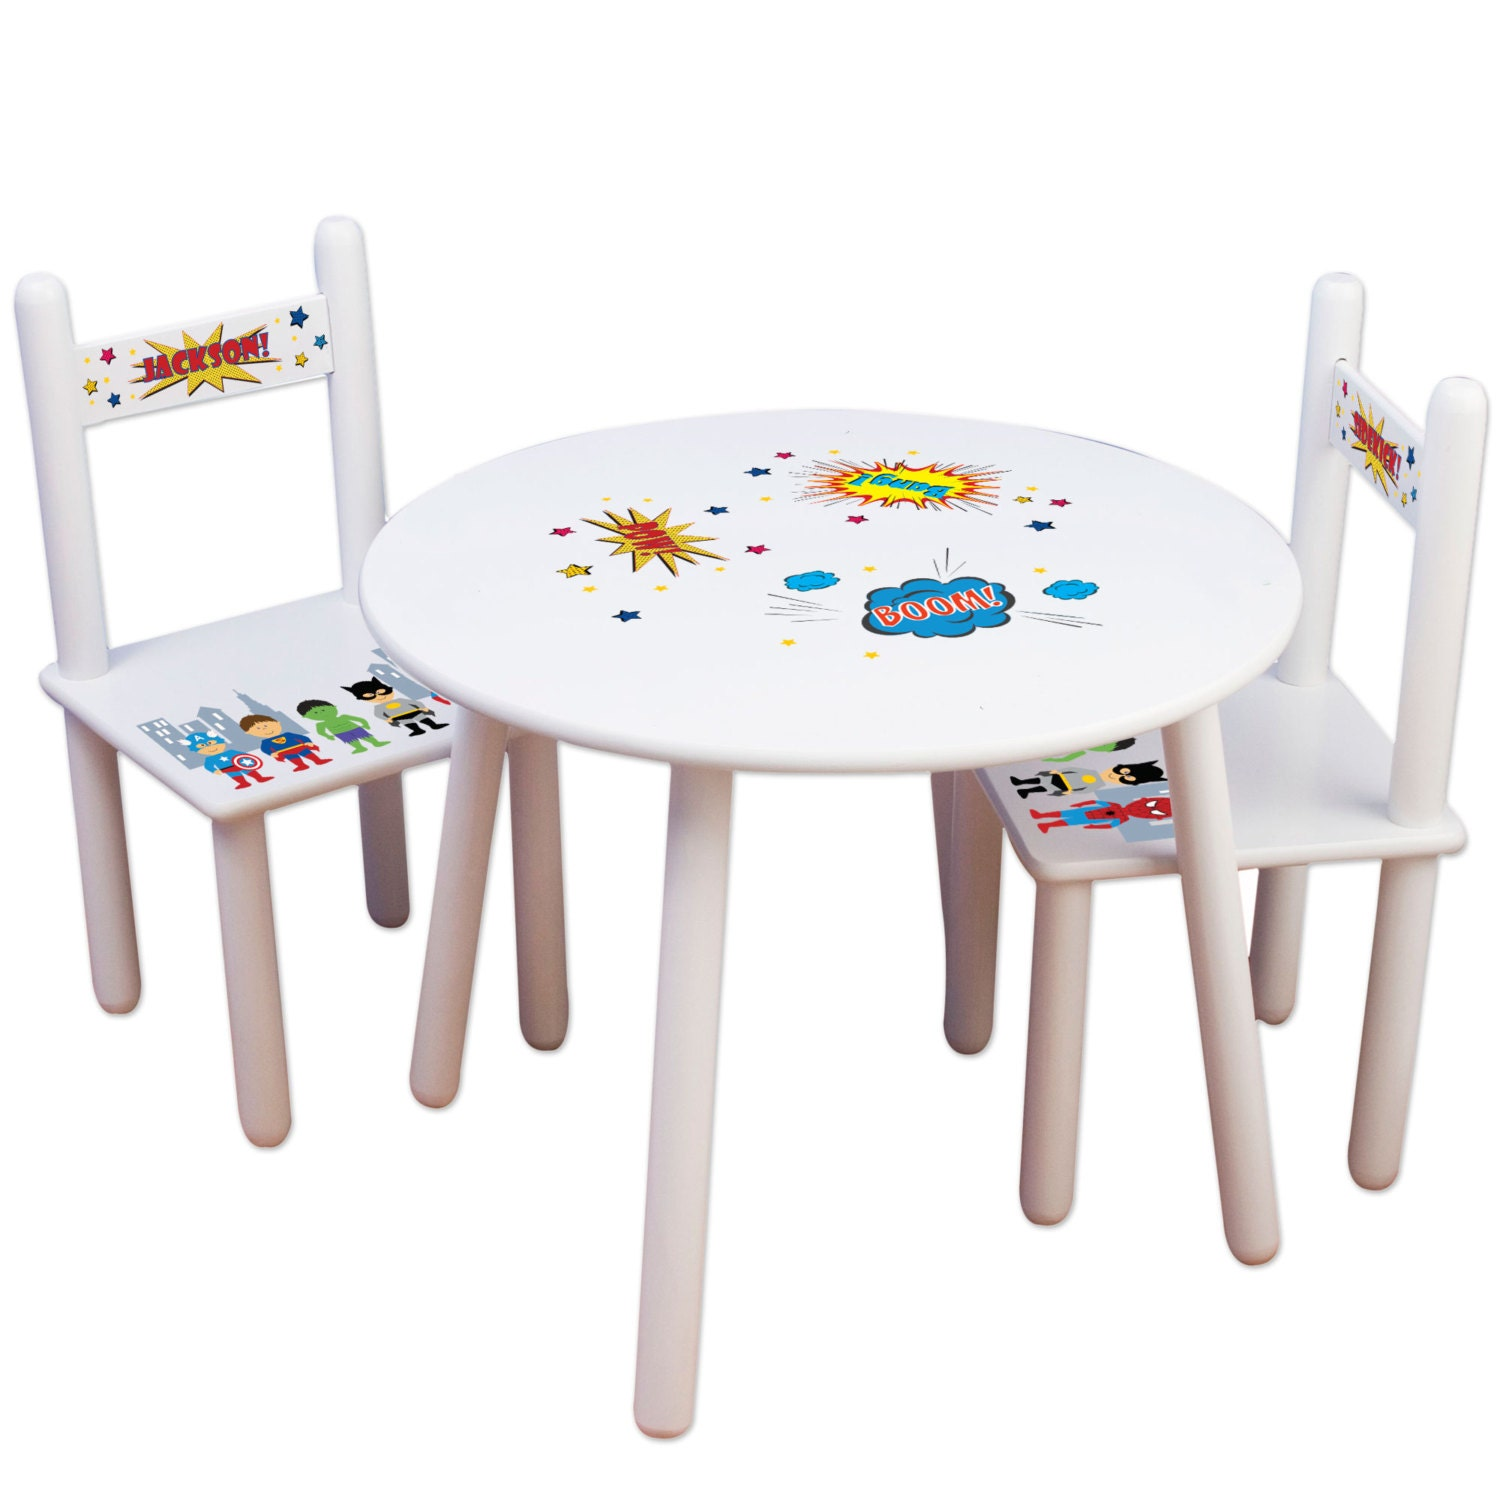 Childrens Table And Chair Sets. Toddler Desk Table Chairs Set Kids . Full resolution‎  portrait, nominally Width 1500 Height 1500 pixels, portrait with #1285B9.